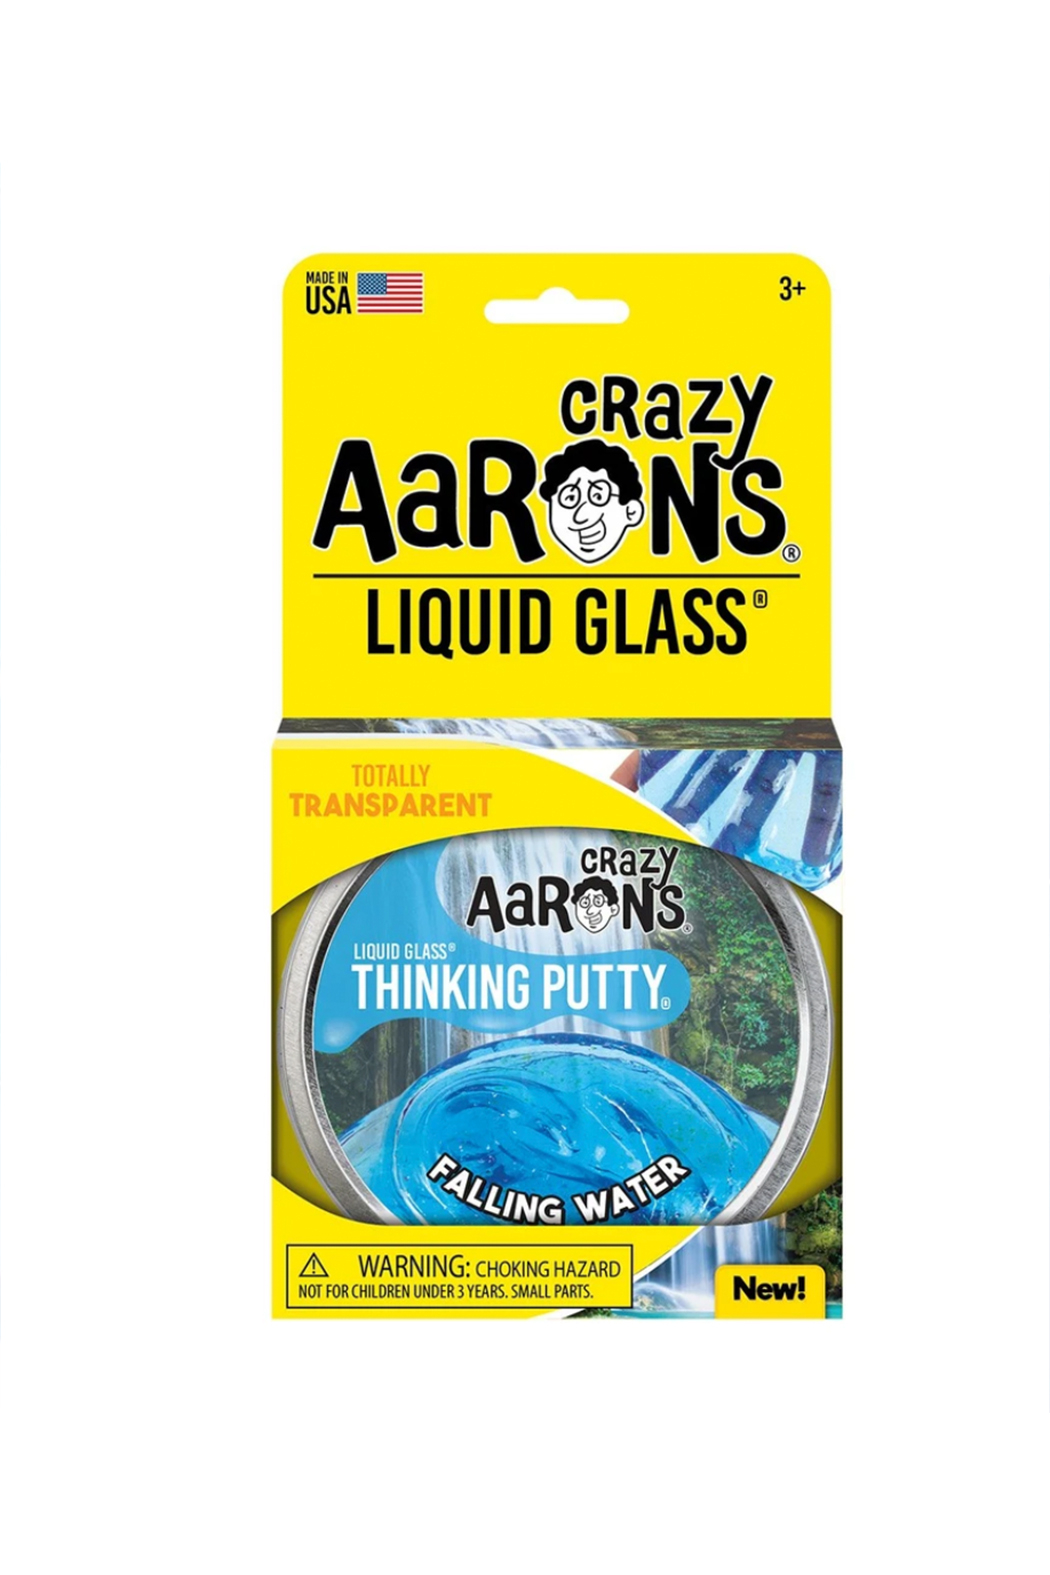 Crazy Aaron's  Liquid Glass Putty: Falling Water - Main Image